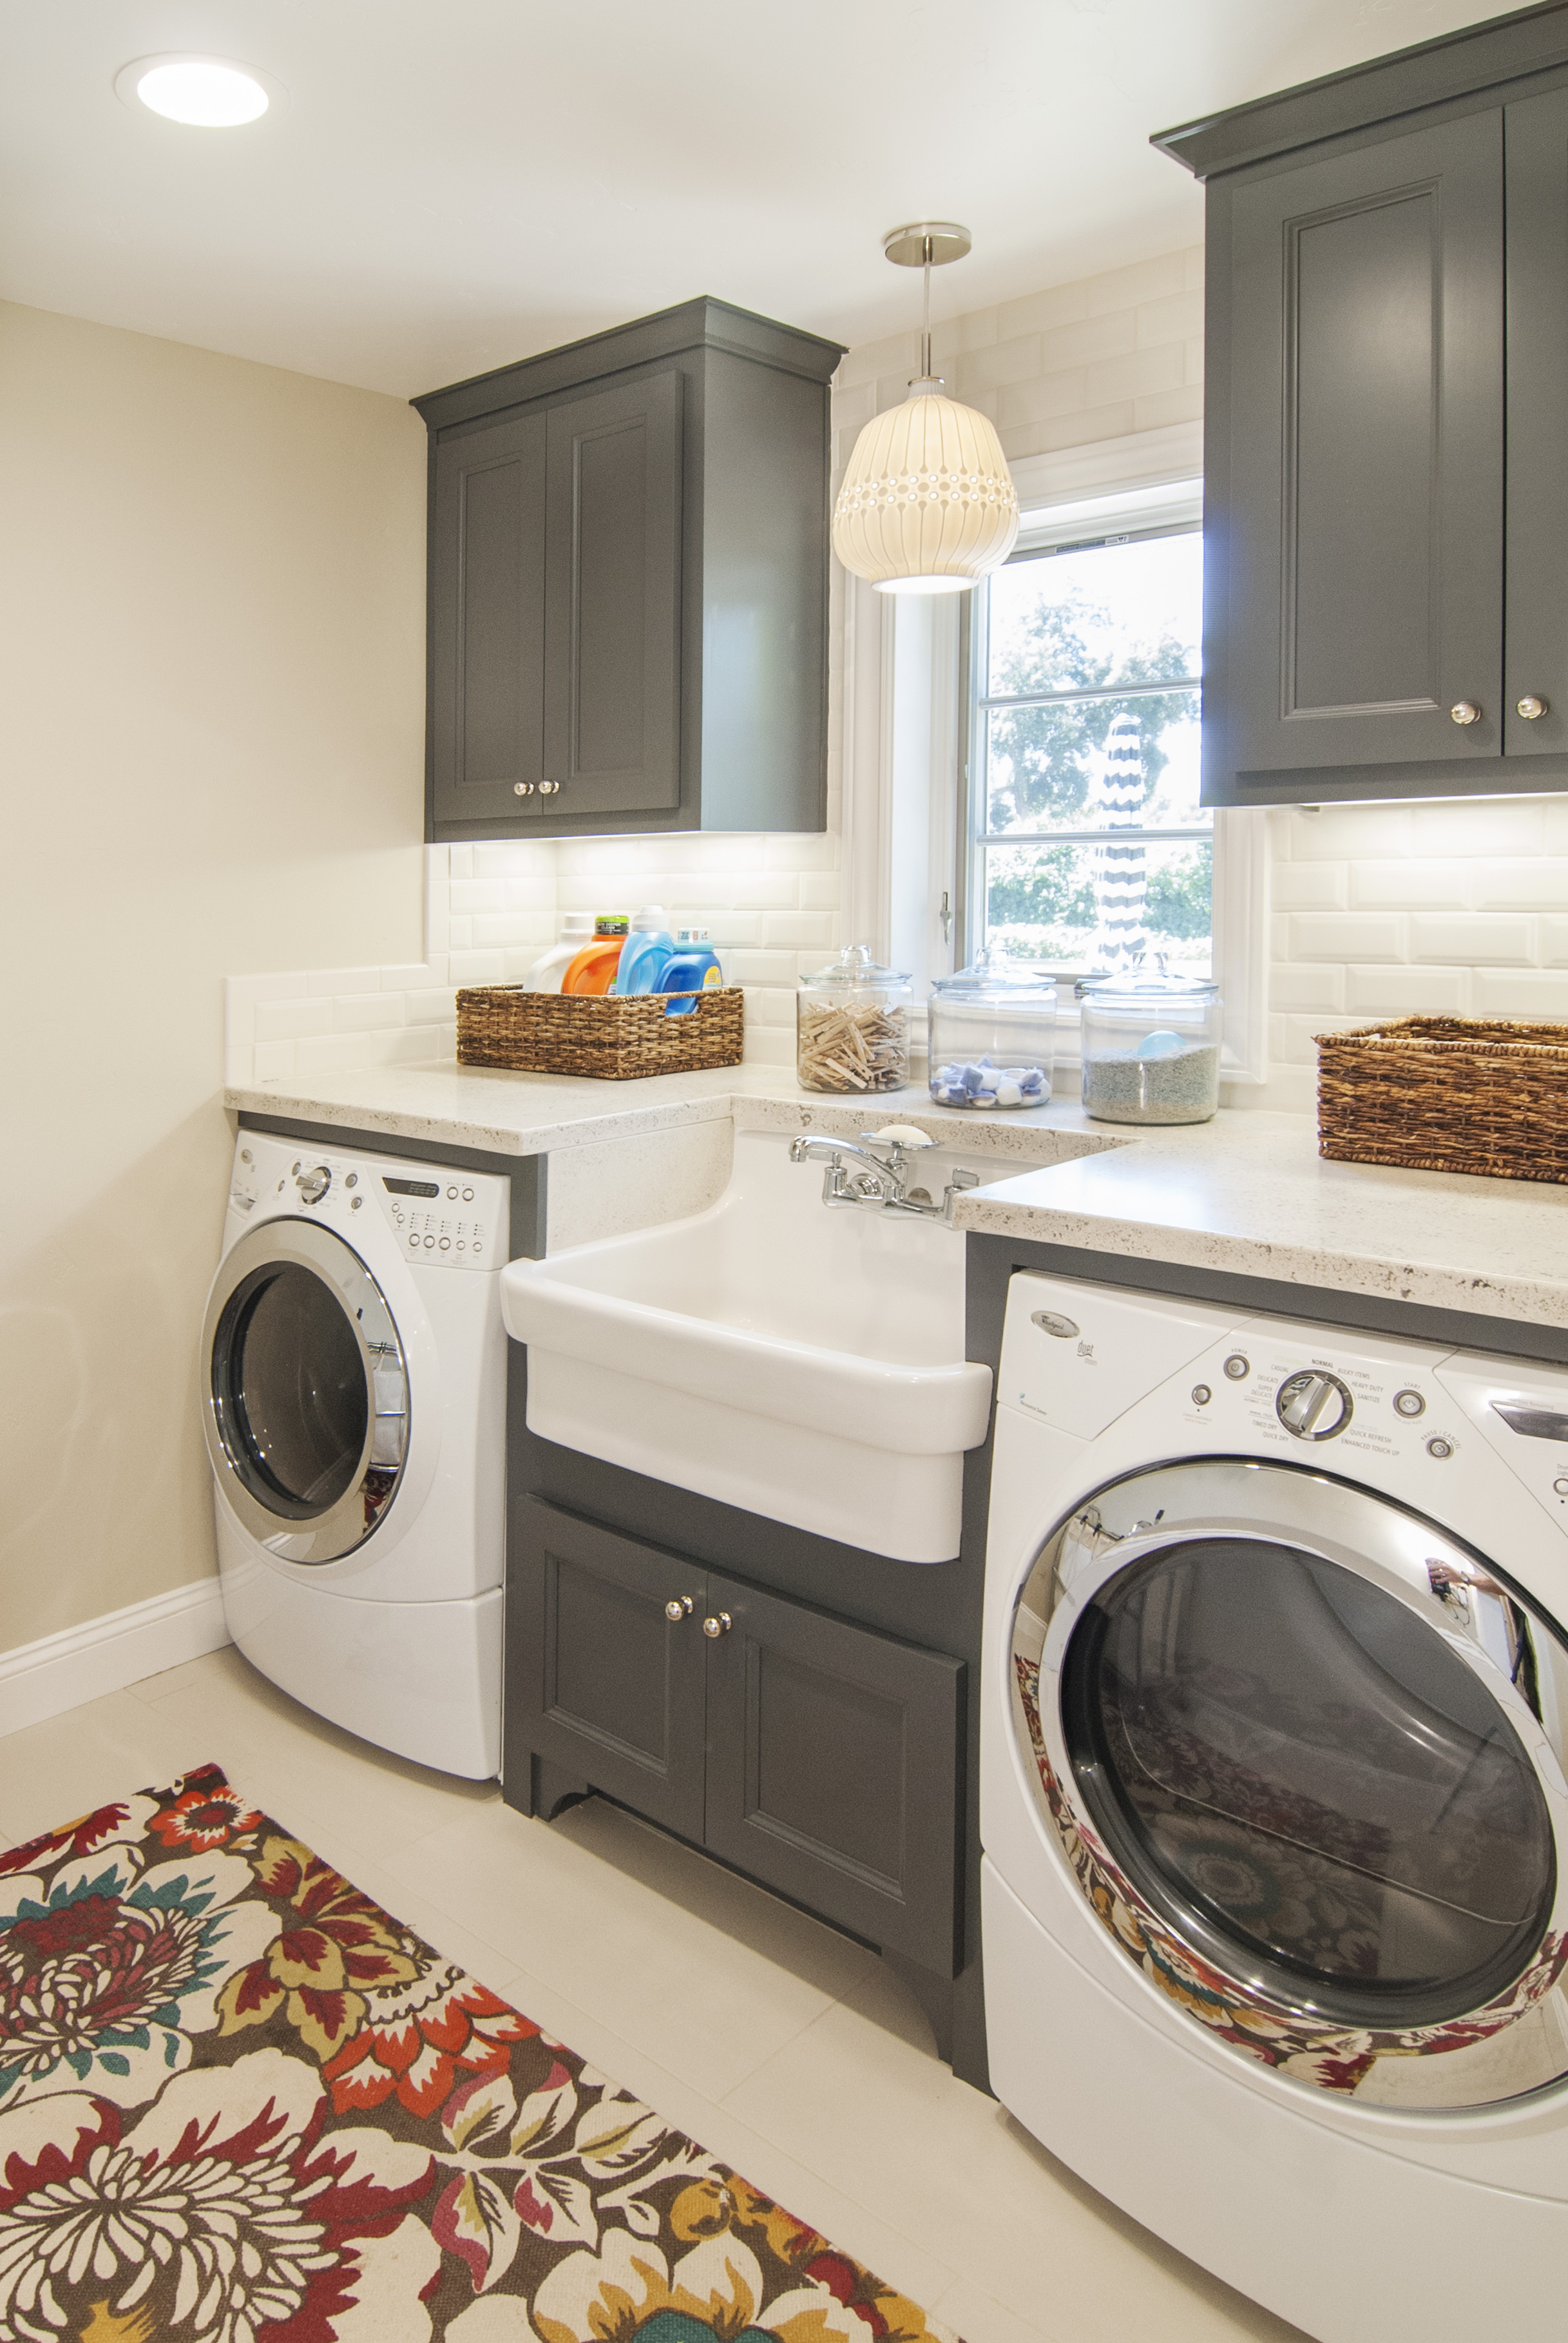 Beautiful Painted Laundry Room Built Ins With A White Farm House Sink And Whirpool